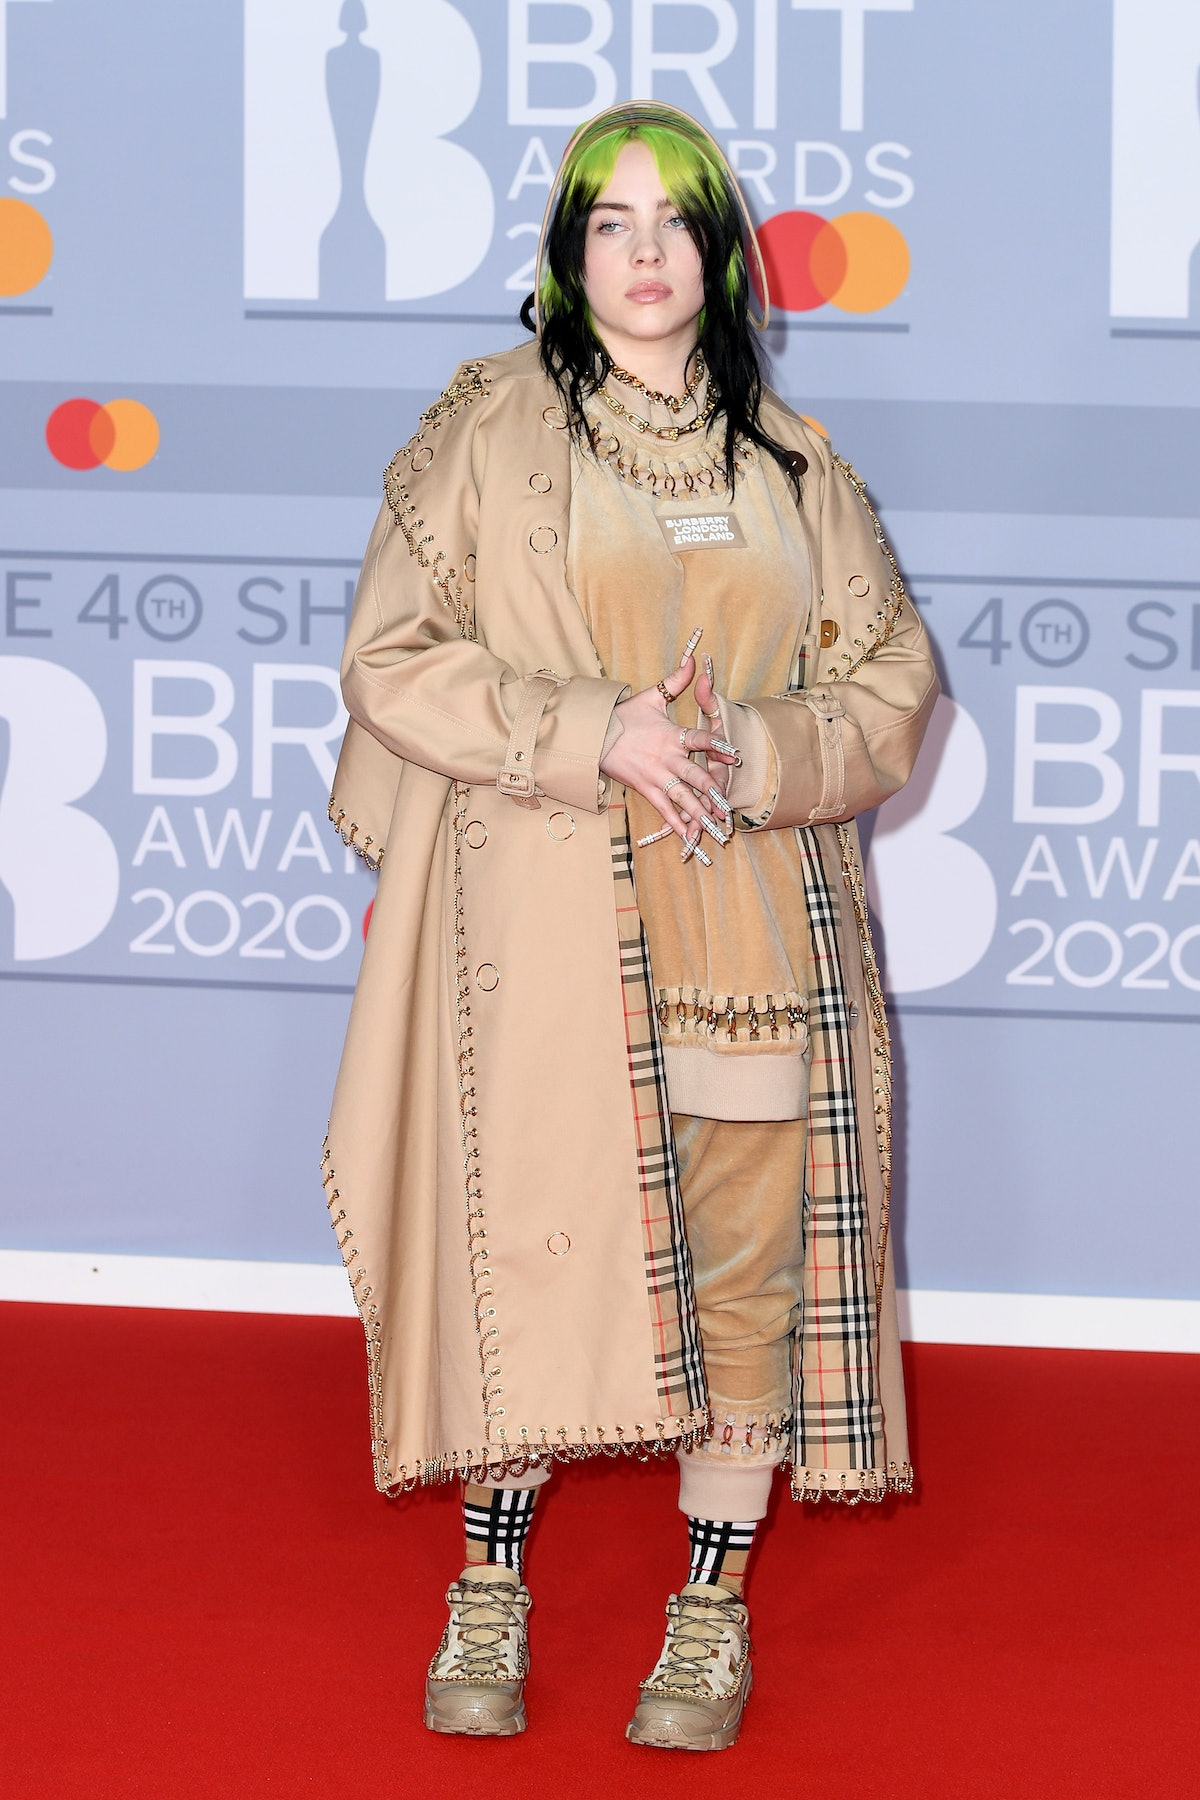 Billie Eilish attends The BRIT Awards 2020 at The O2 Arena on February 18, 2020 in London, England....